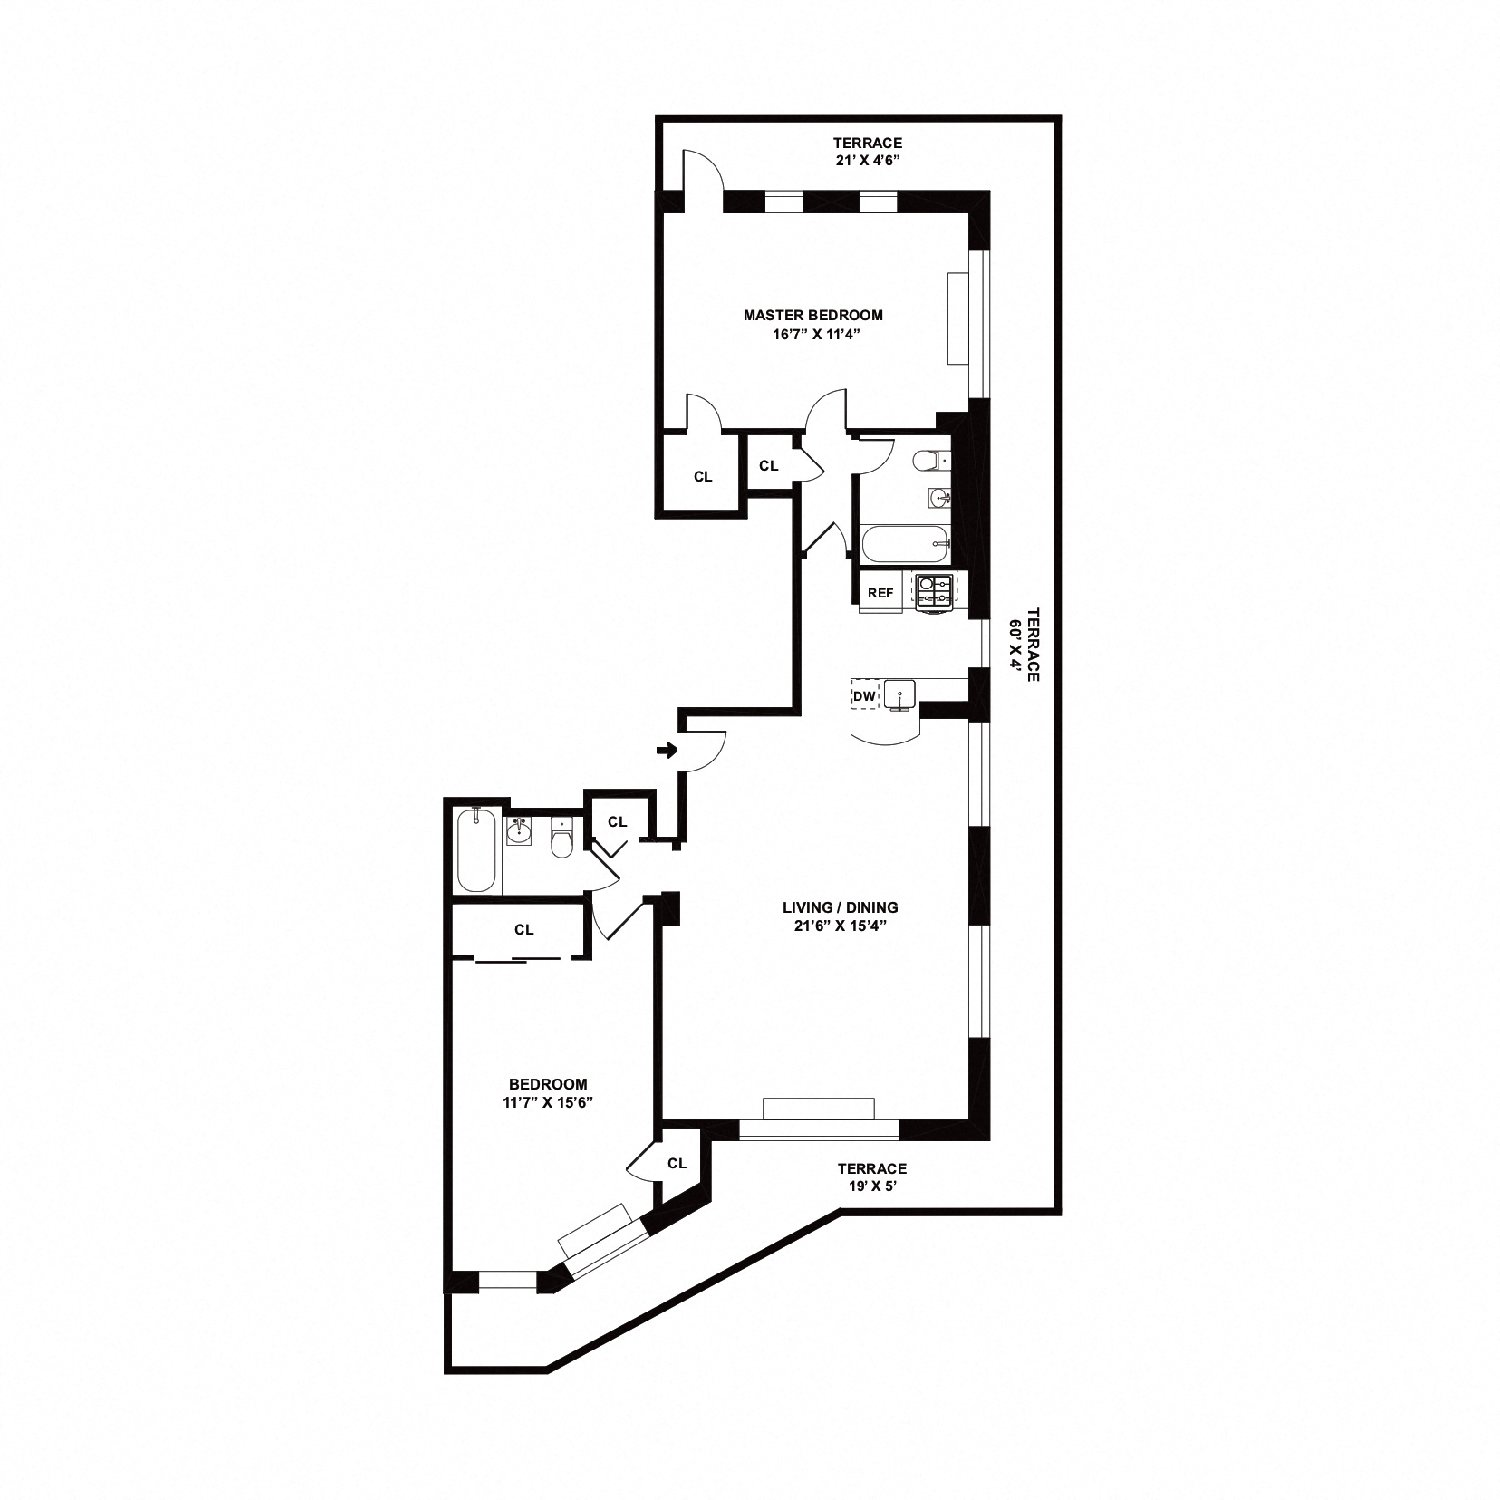 Floor plan diagram. Penthouse apartment with two bedrooms, two bathrooms, an open kitchen and living area, and a large wrap around terrace.